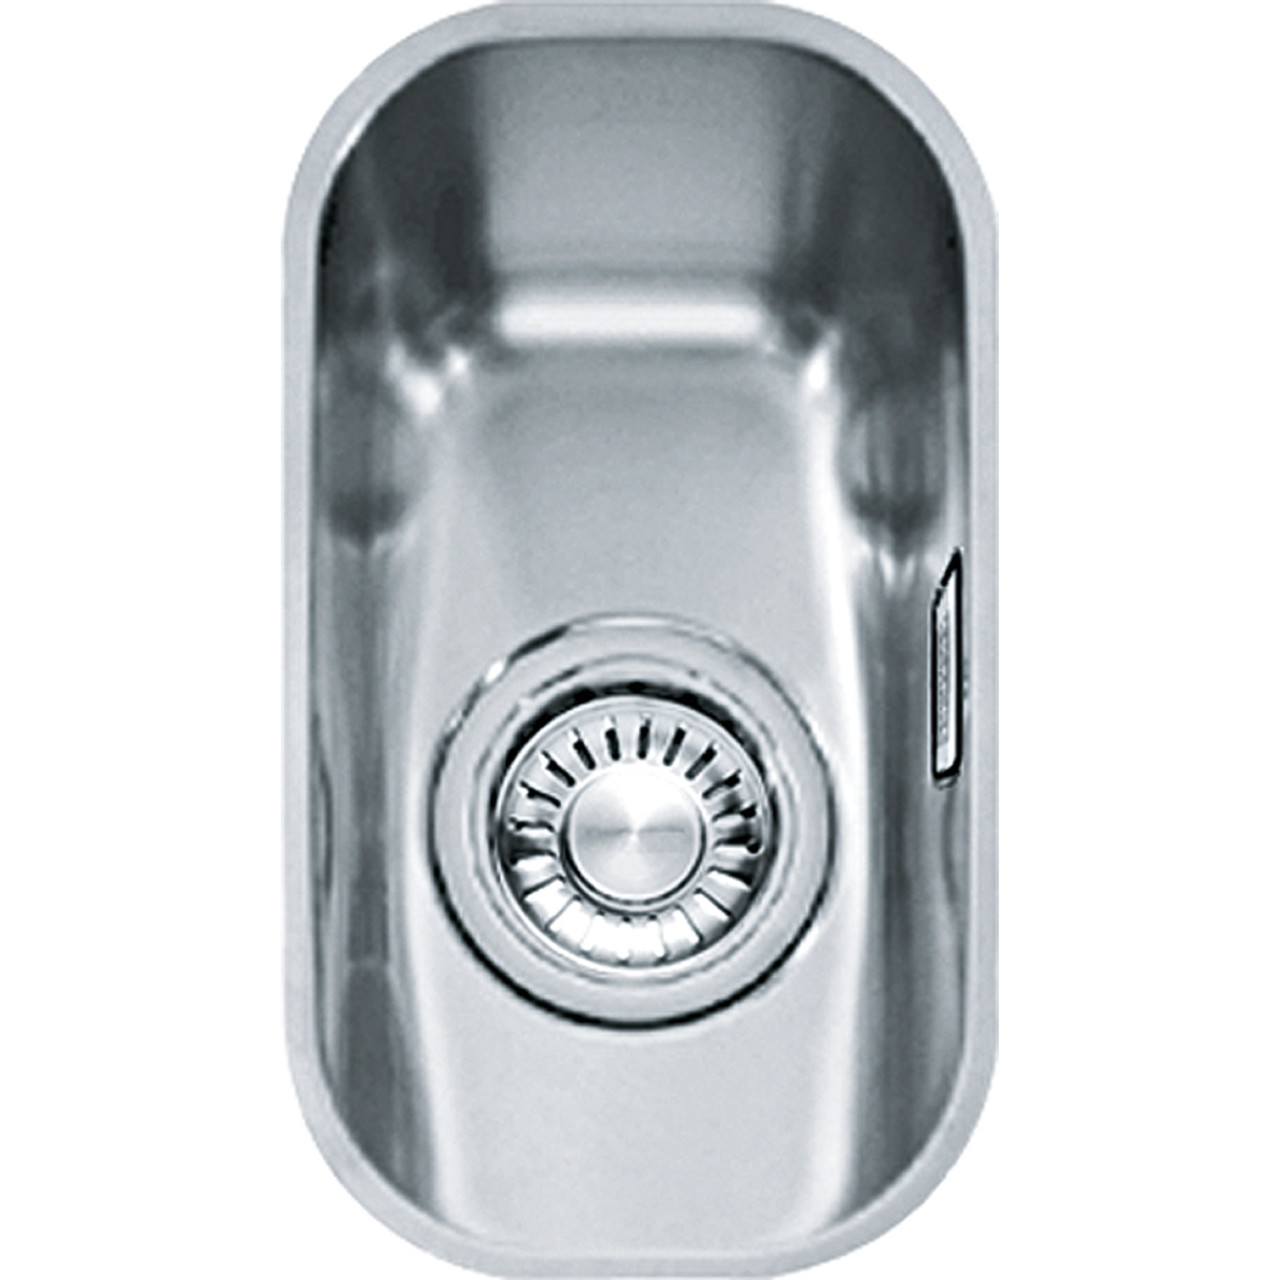 Franke ariane arx110 17 stainless steel kitchen sink sinks for Kitchen 17 delivery